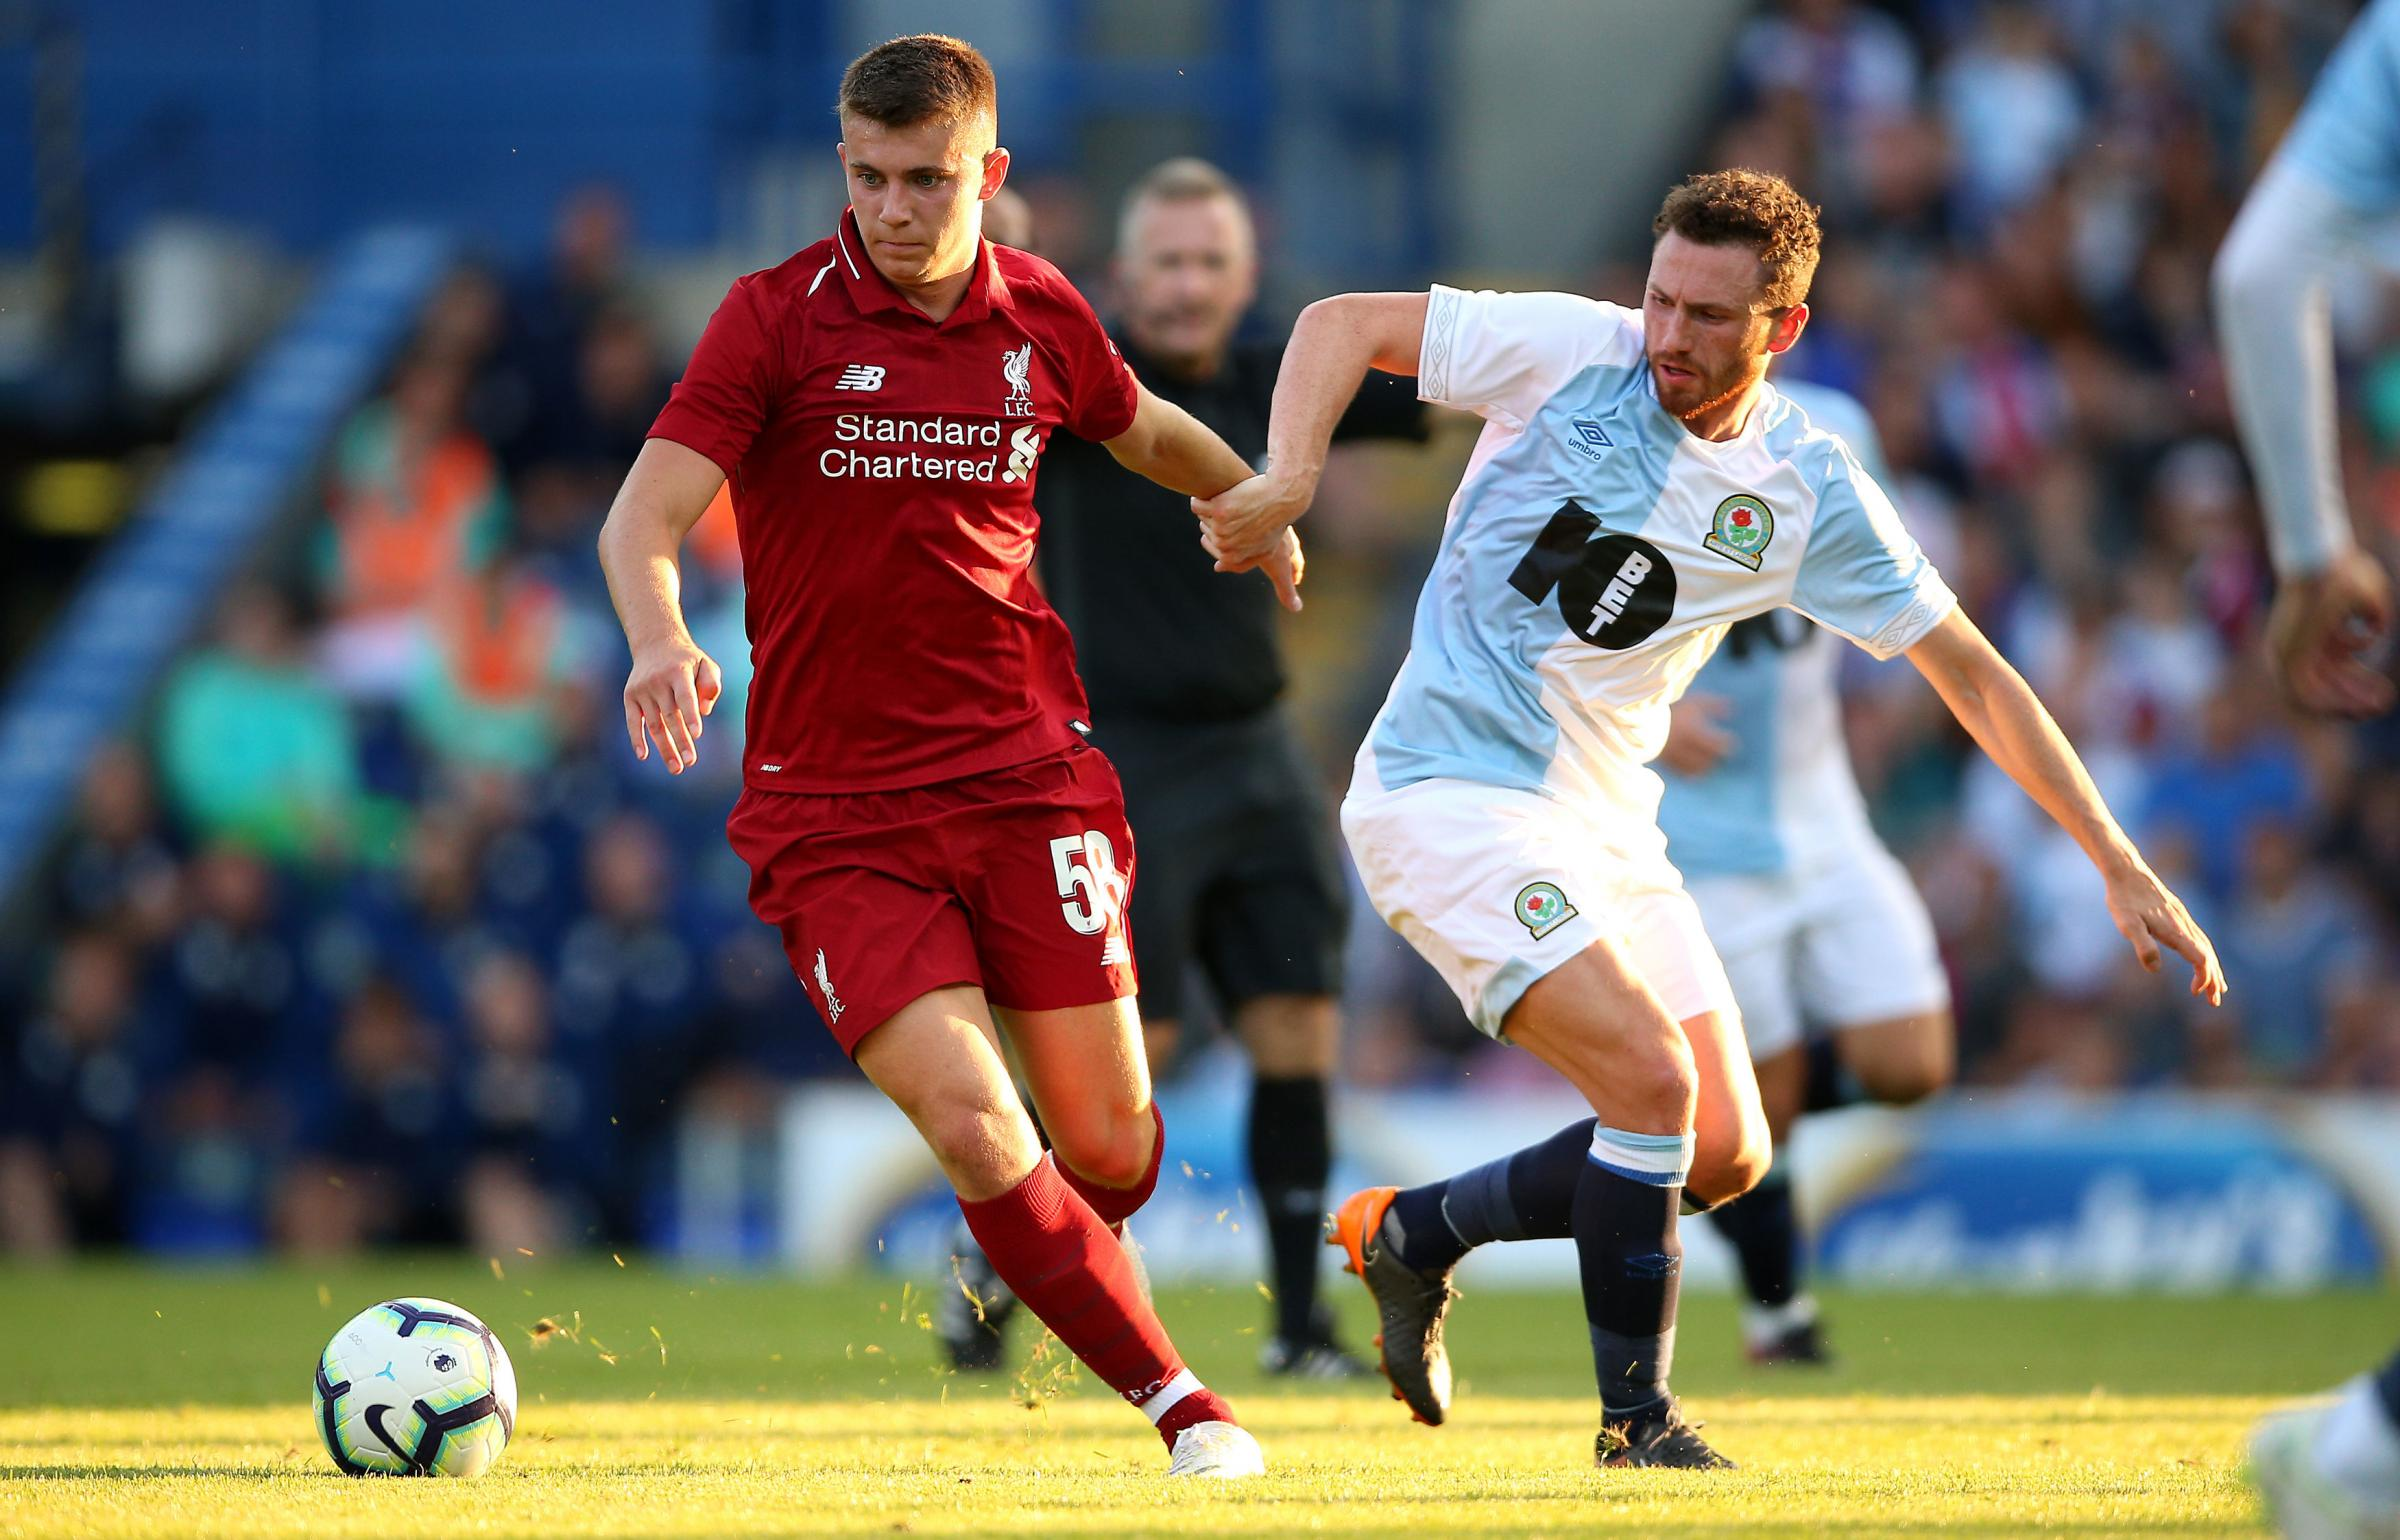 Ben Woodburn played against Rovers for Liverpool in a pre-season friendly